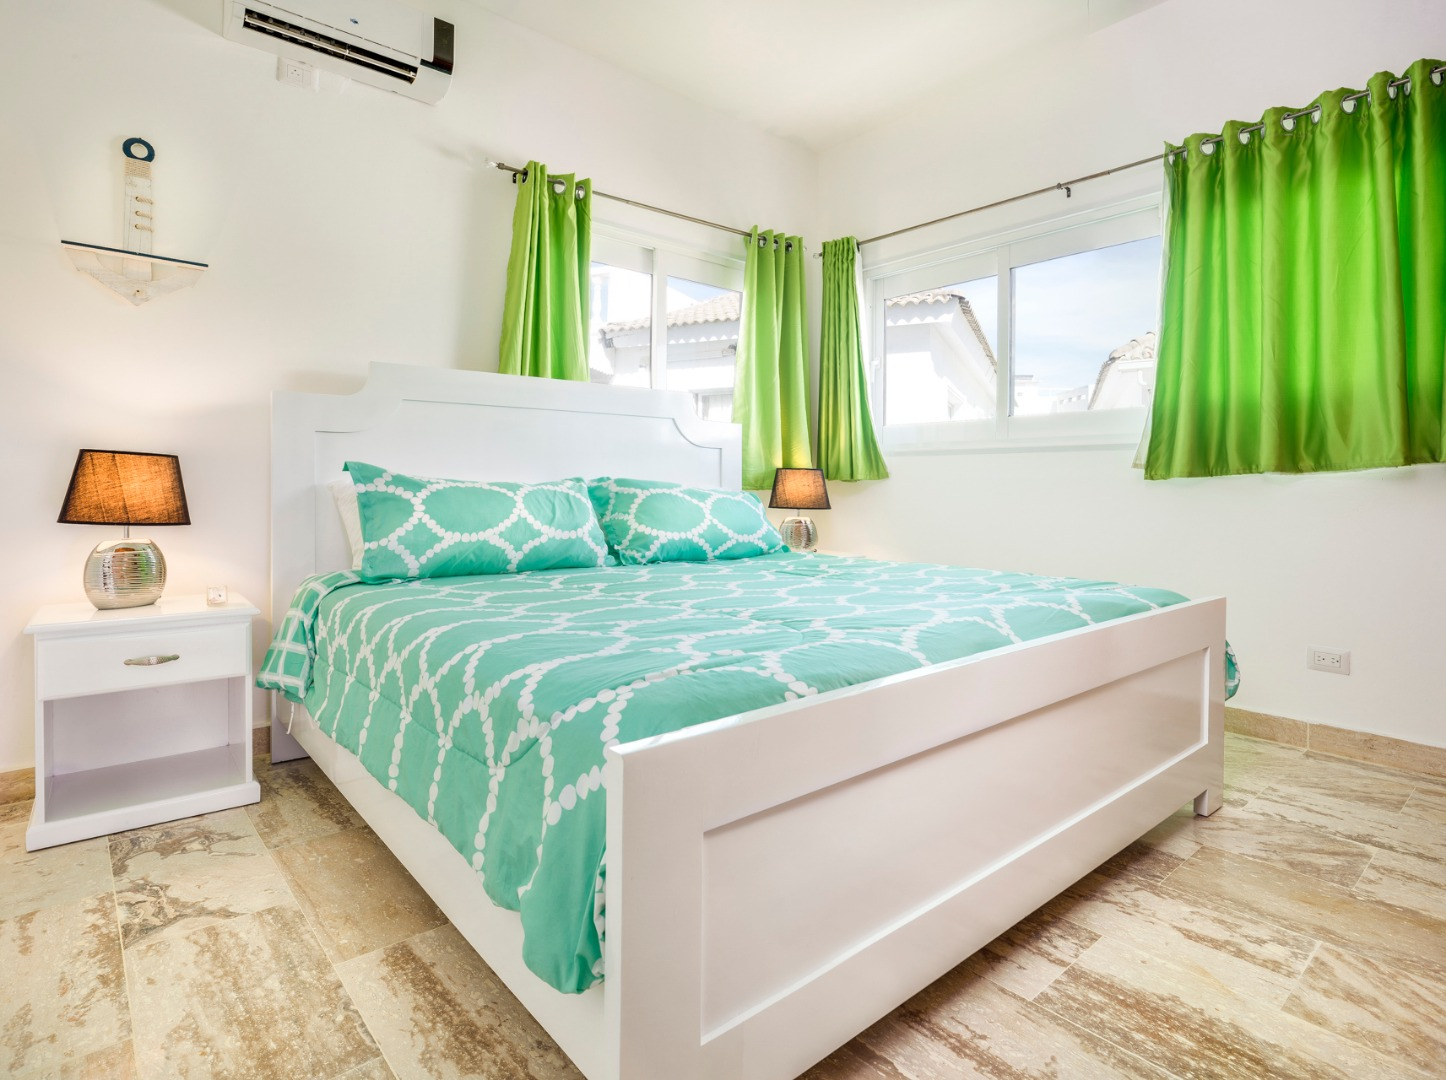 Bayrock 2 B31 Ocean Front 2x King Beds Beach Gym